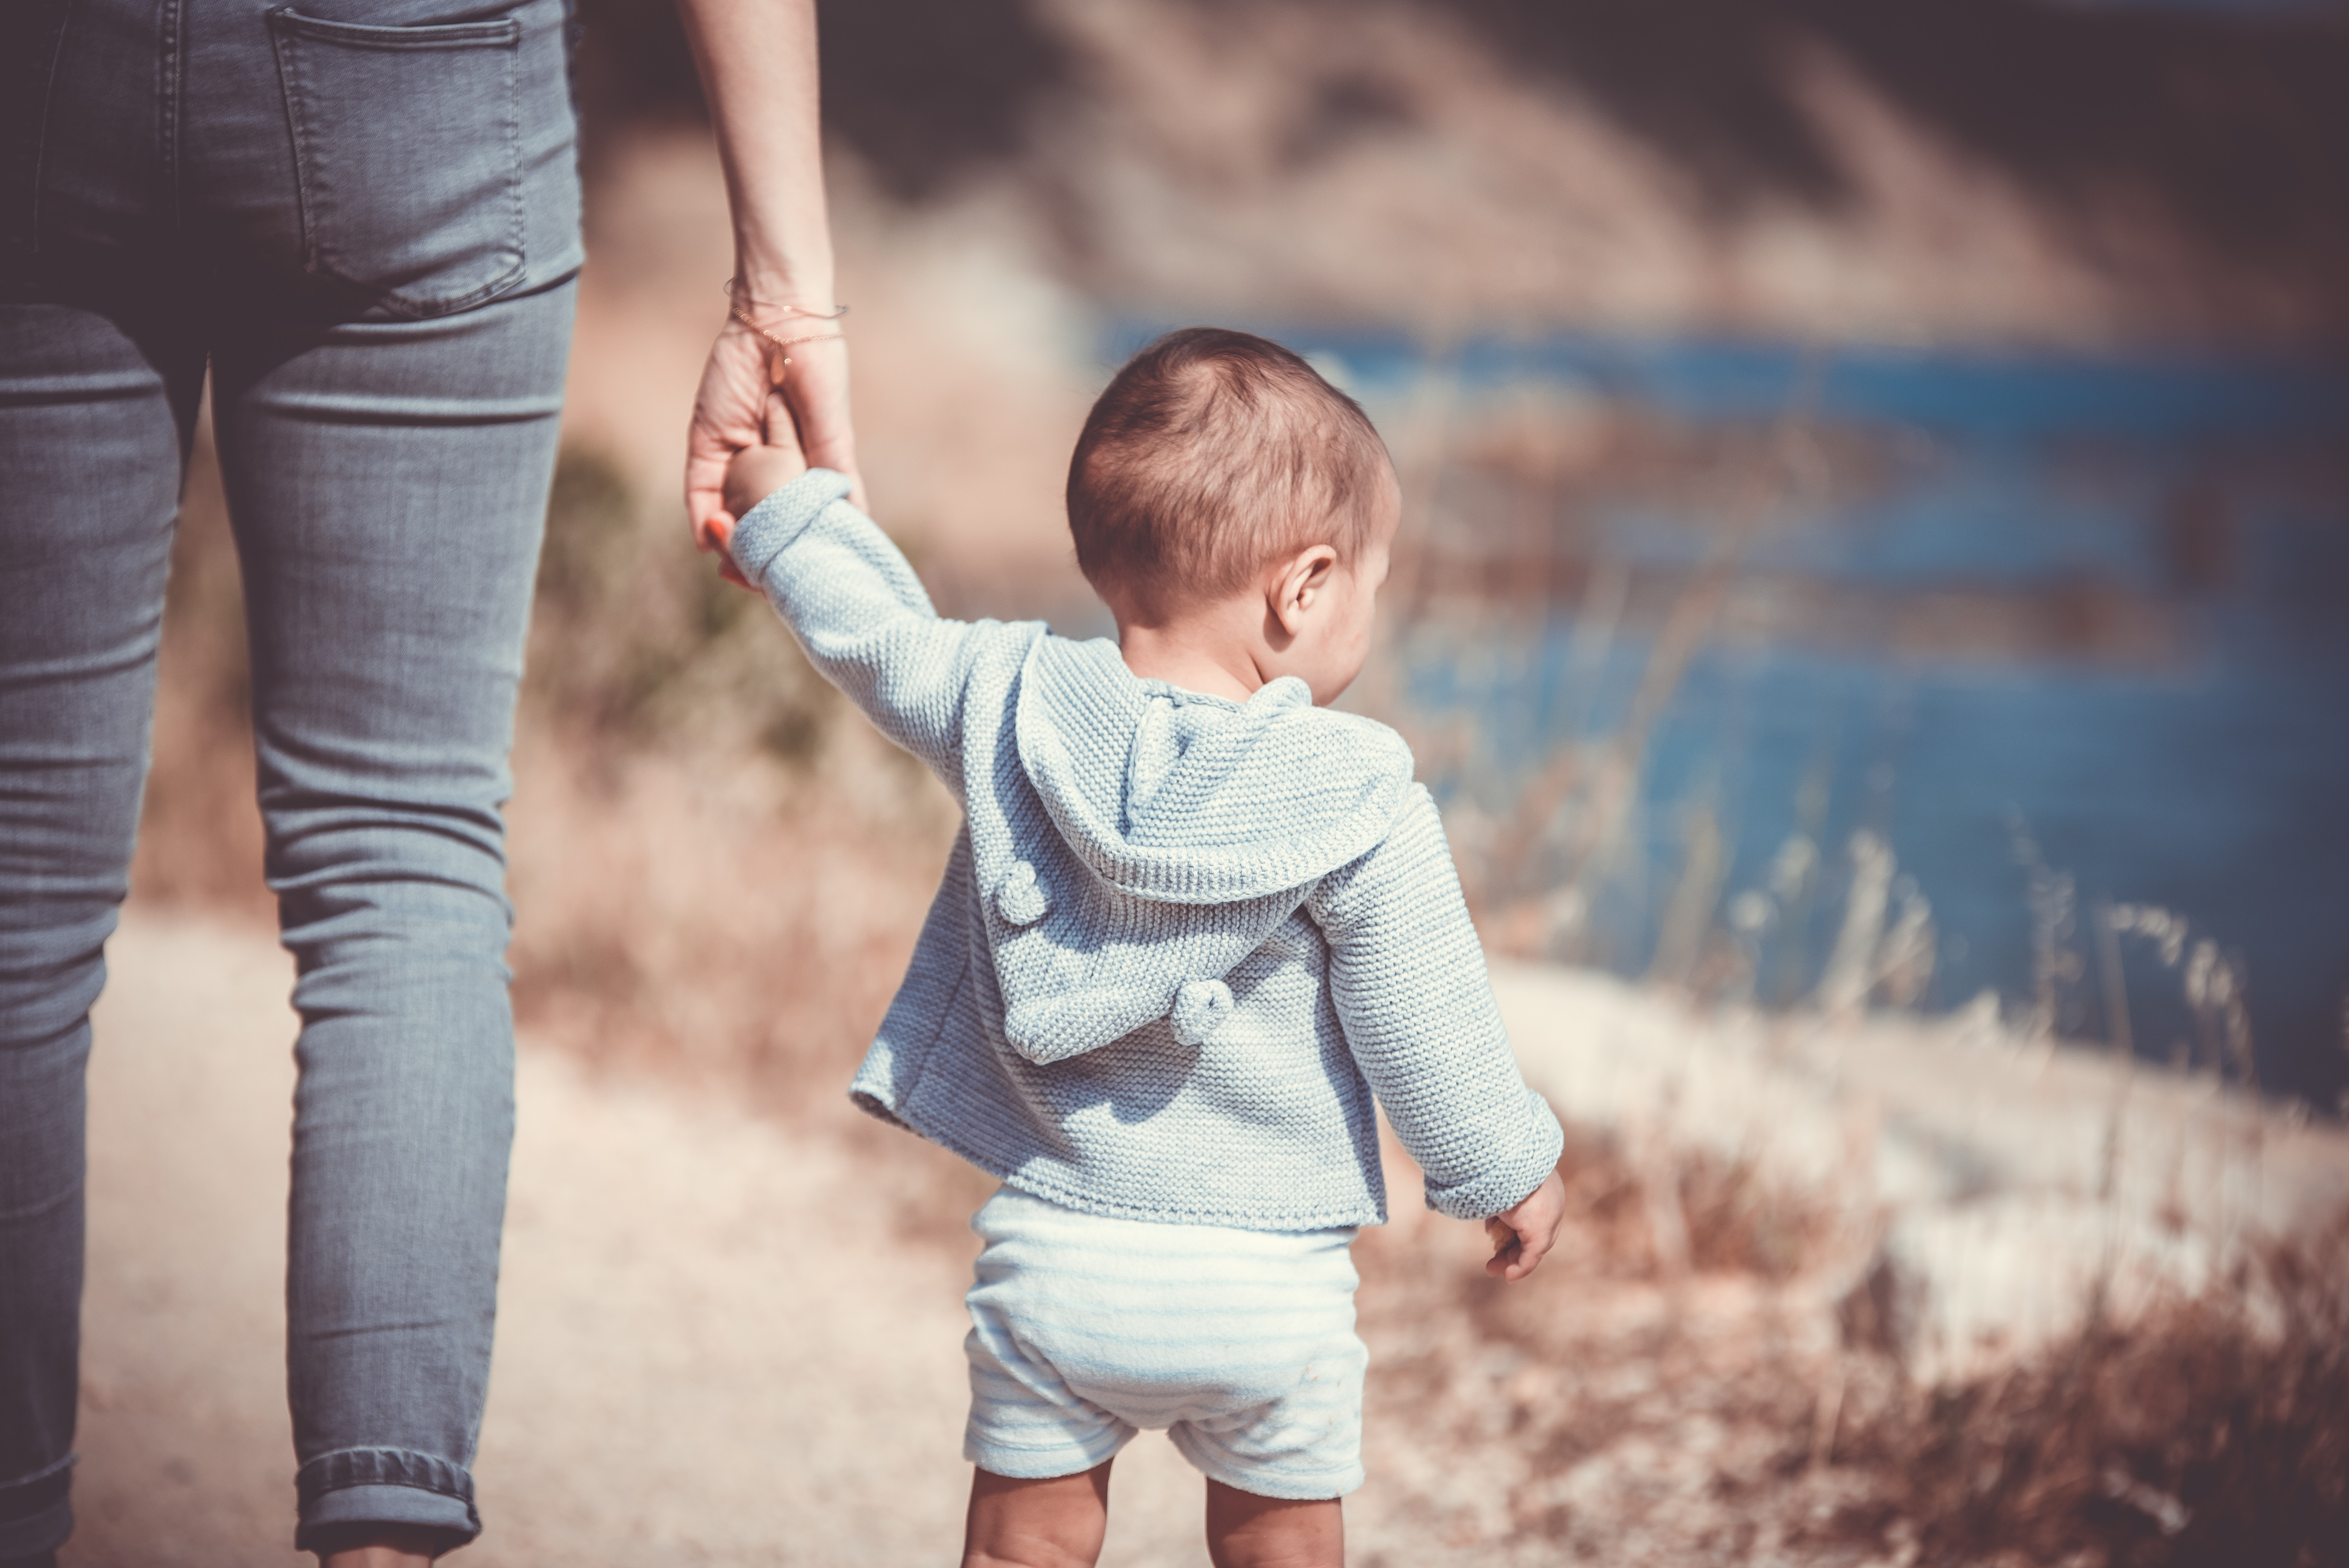 Overcoming The Major Struggles of Being A Single Mom (Guest Post Days)